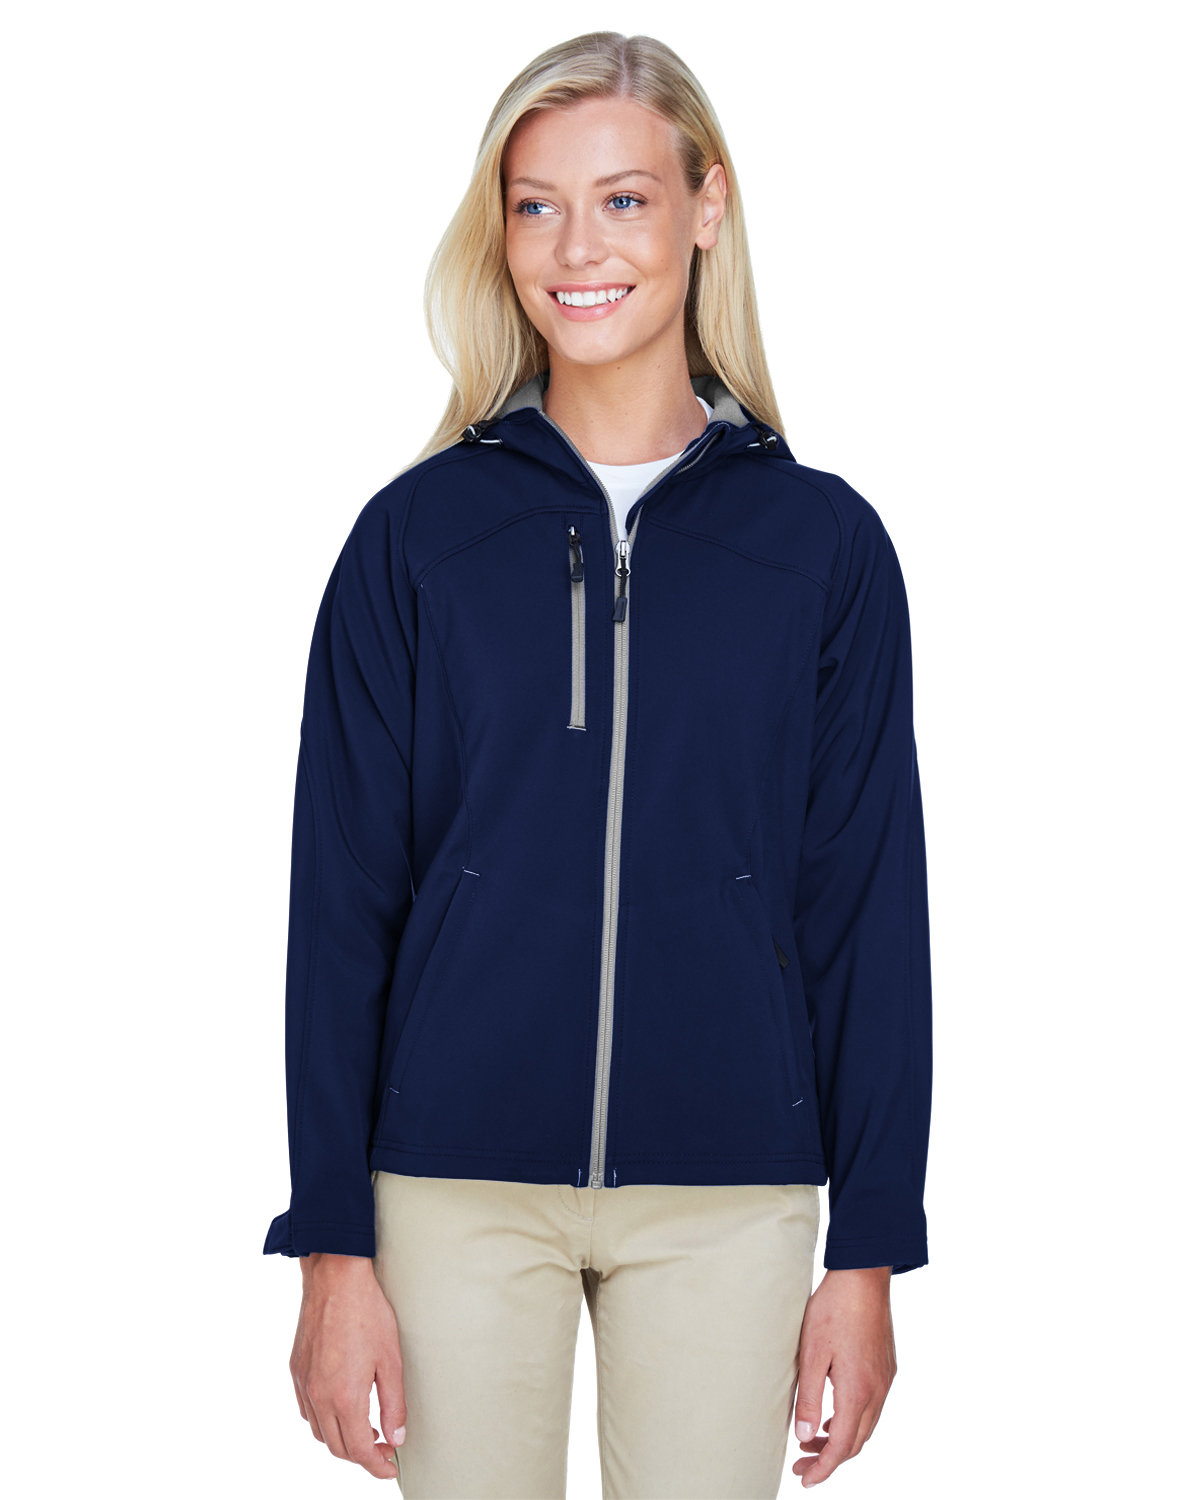 North End Ladies' Prospect Two-Layer Fleece Bonded Soft Shell Hooded Jacket CLASSIC NAVY